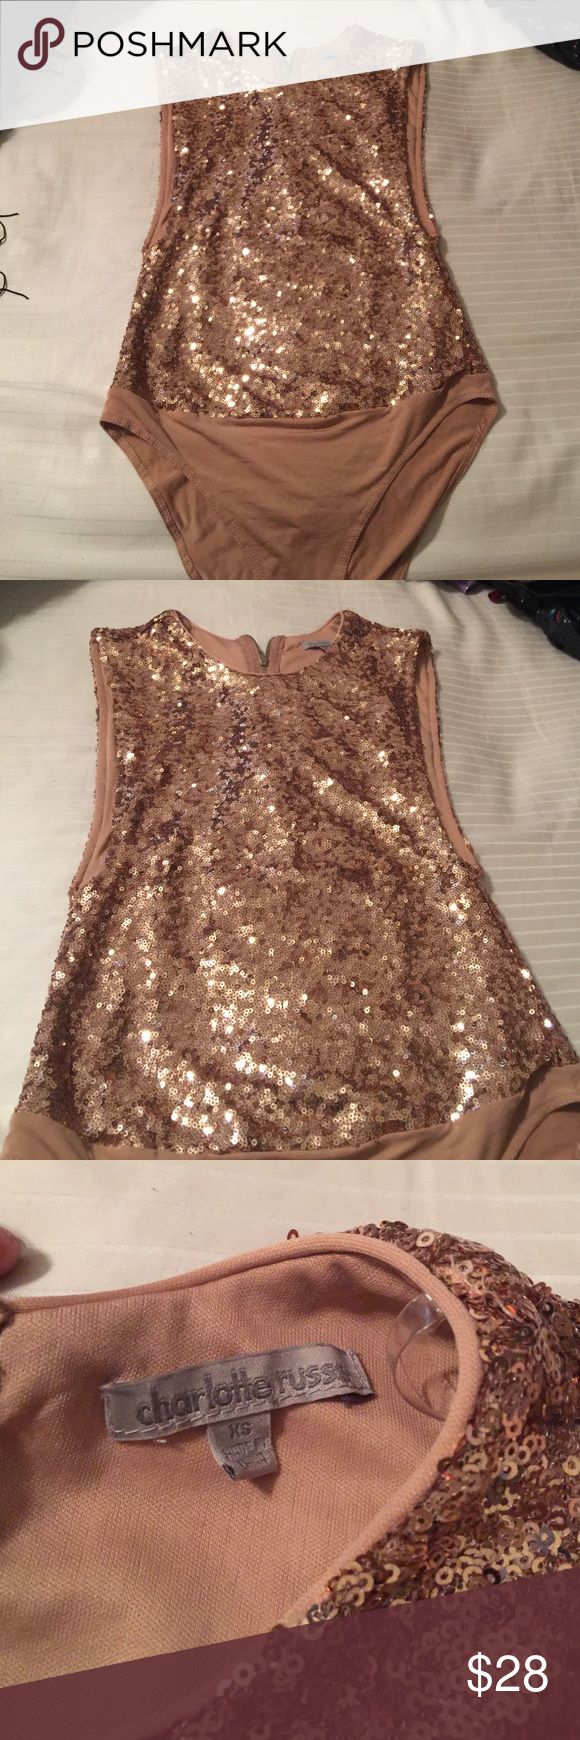 Sequin bodysuit Charlotte Rouse rose gold bodysuit XS. Worn one and it great condition. Charlotte Russe Swim One Pieces